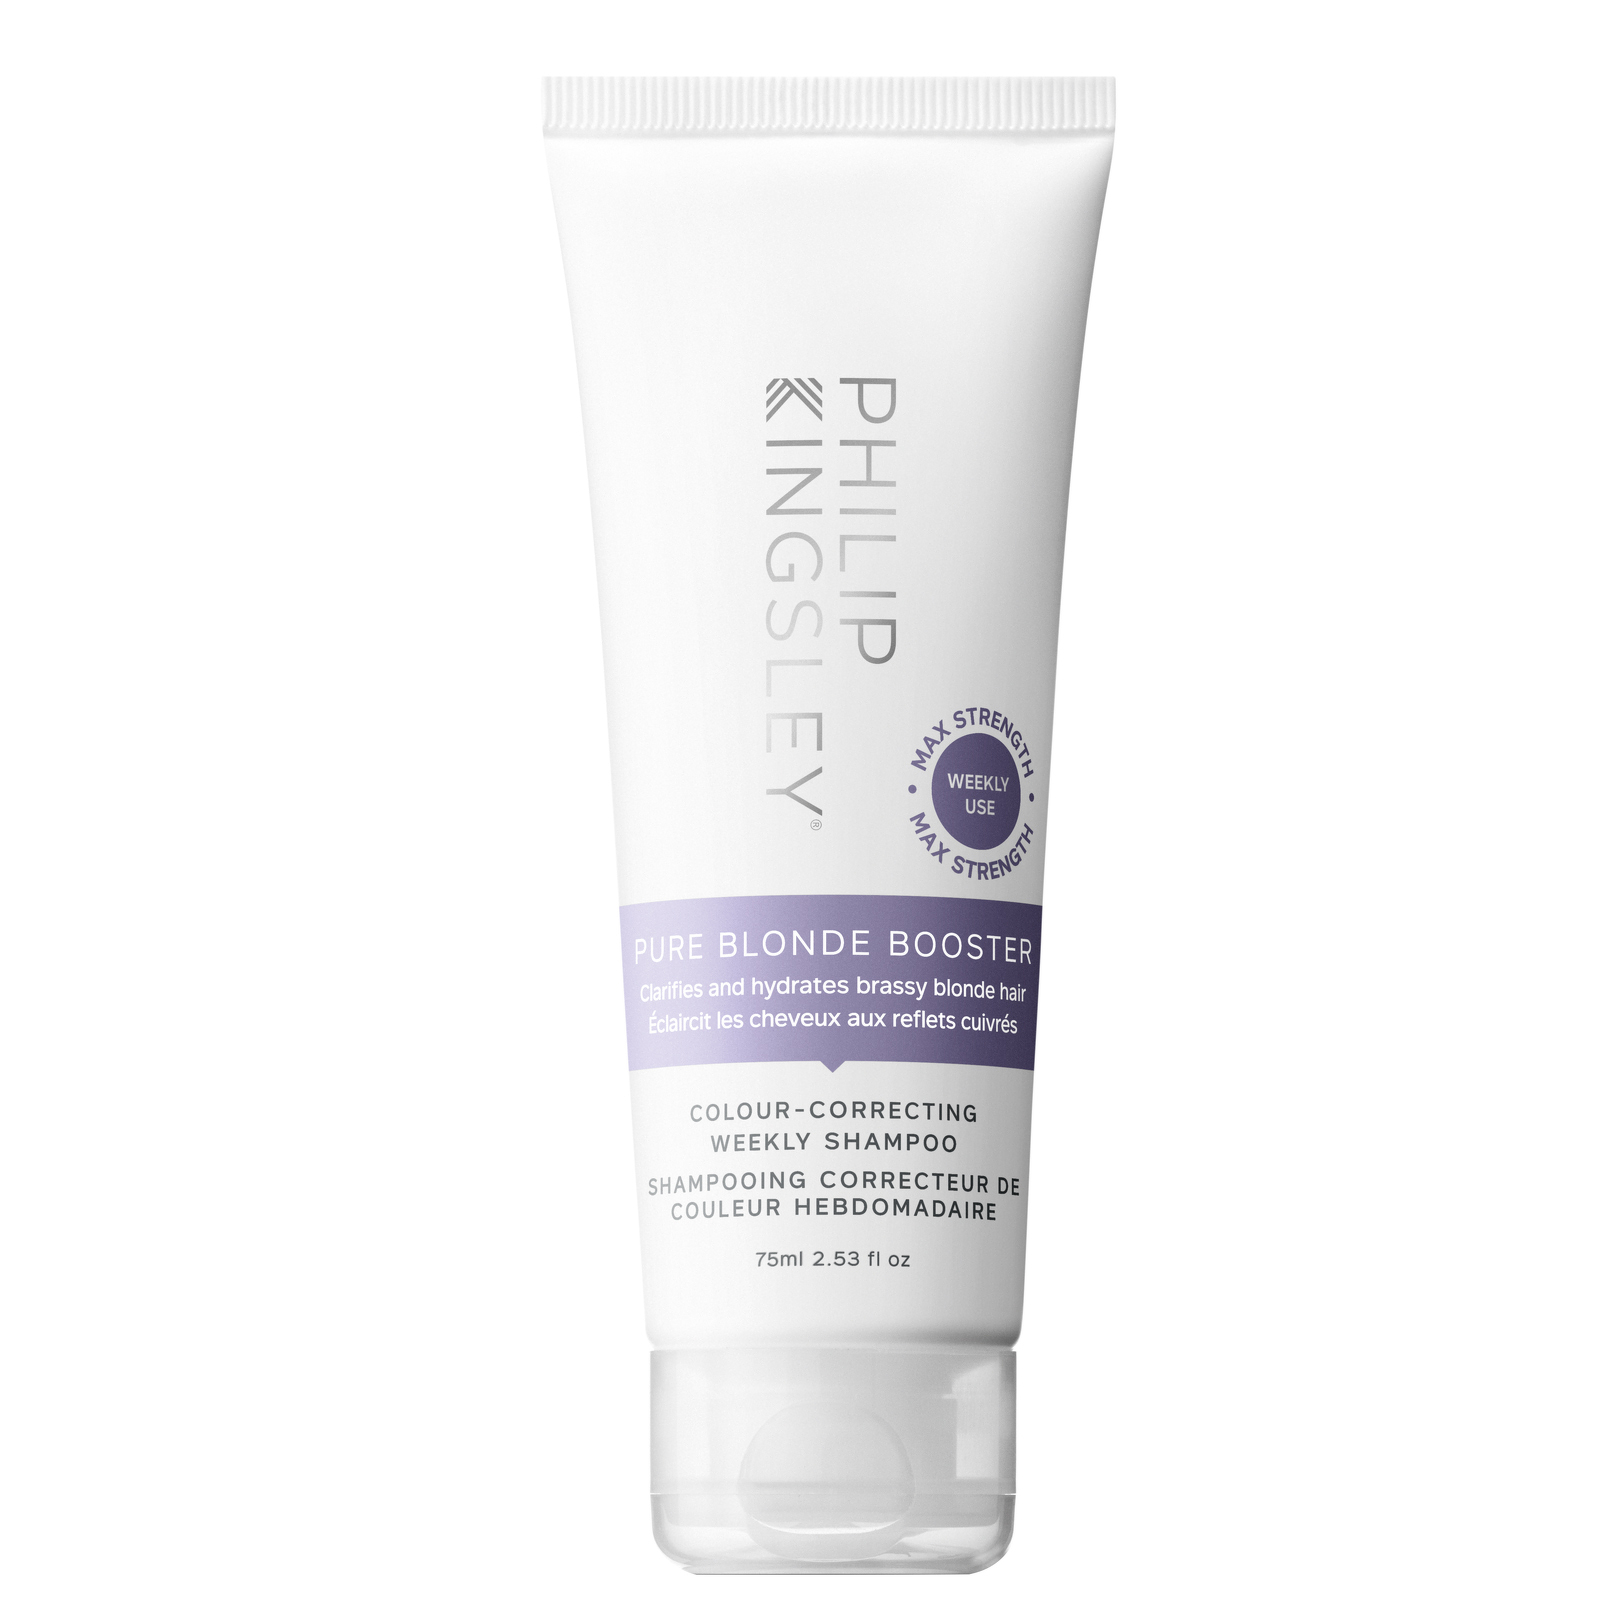 Philip Kingsley Shampoo Pure Blonde Booster Colour-Correcting Weekly Shampoo 75ml